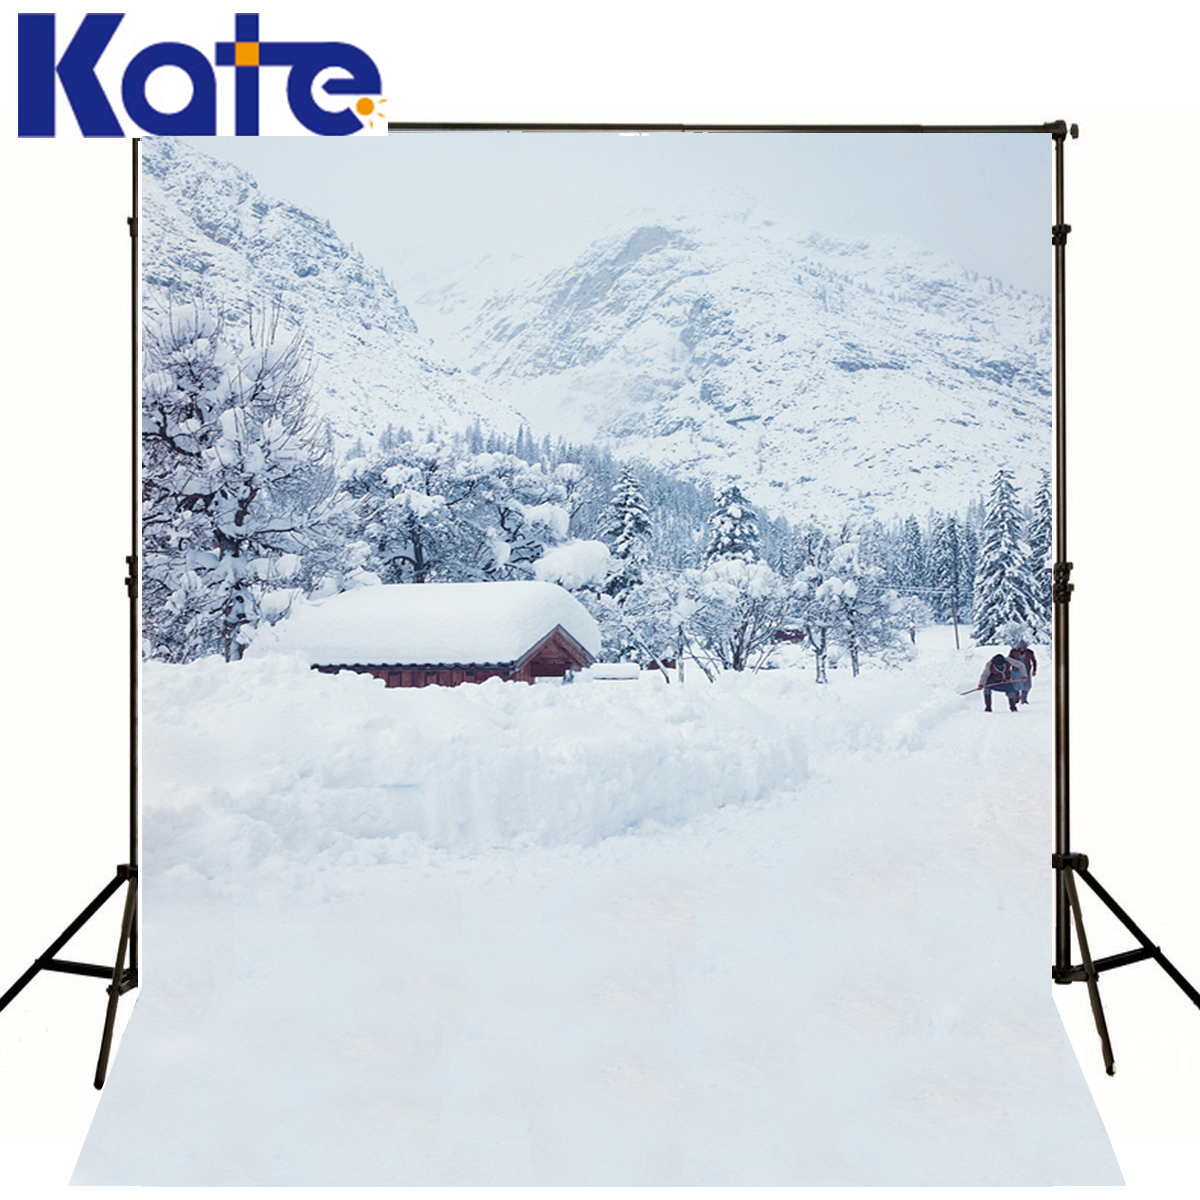 KATE Christmas Background Photography Winter Snowstorm Shovel The White Snow Scenery Mountain Forest Backdrop For Photo Shoot kate christmas village background cartoon photography backdrop moon backgrounds blue winter background for children shoot